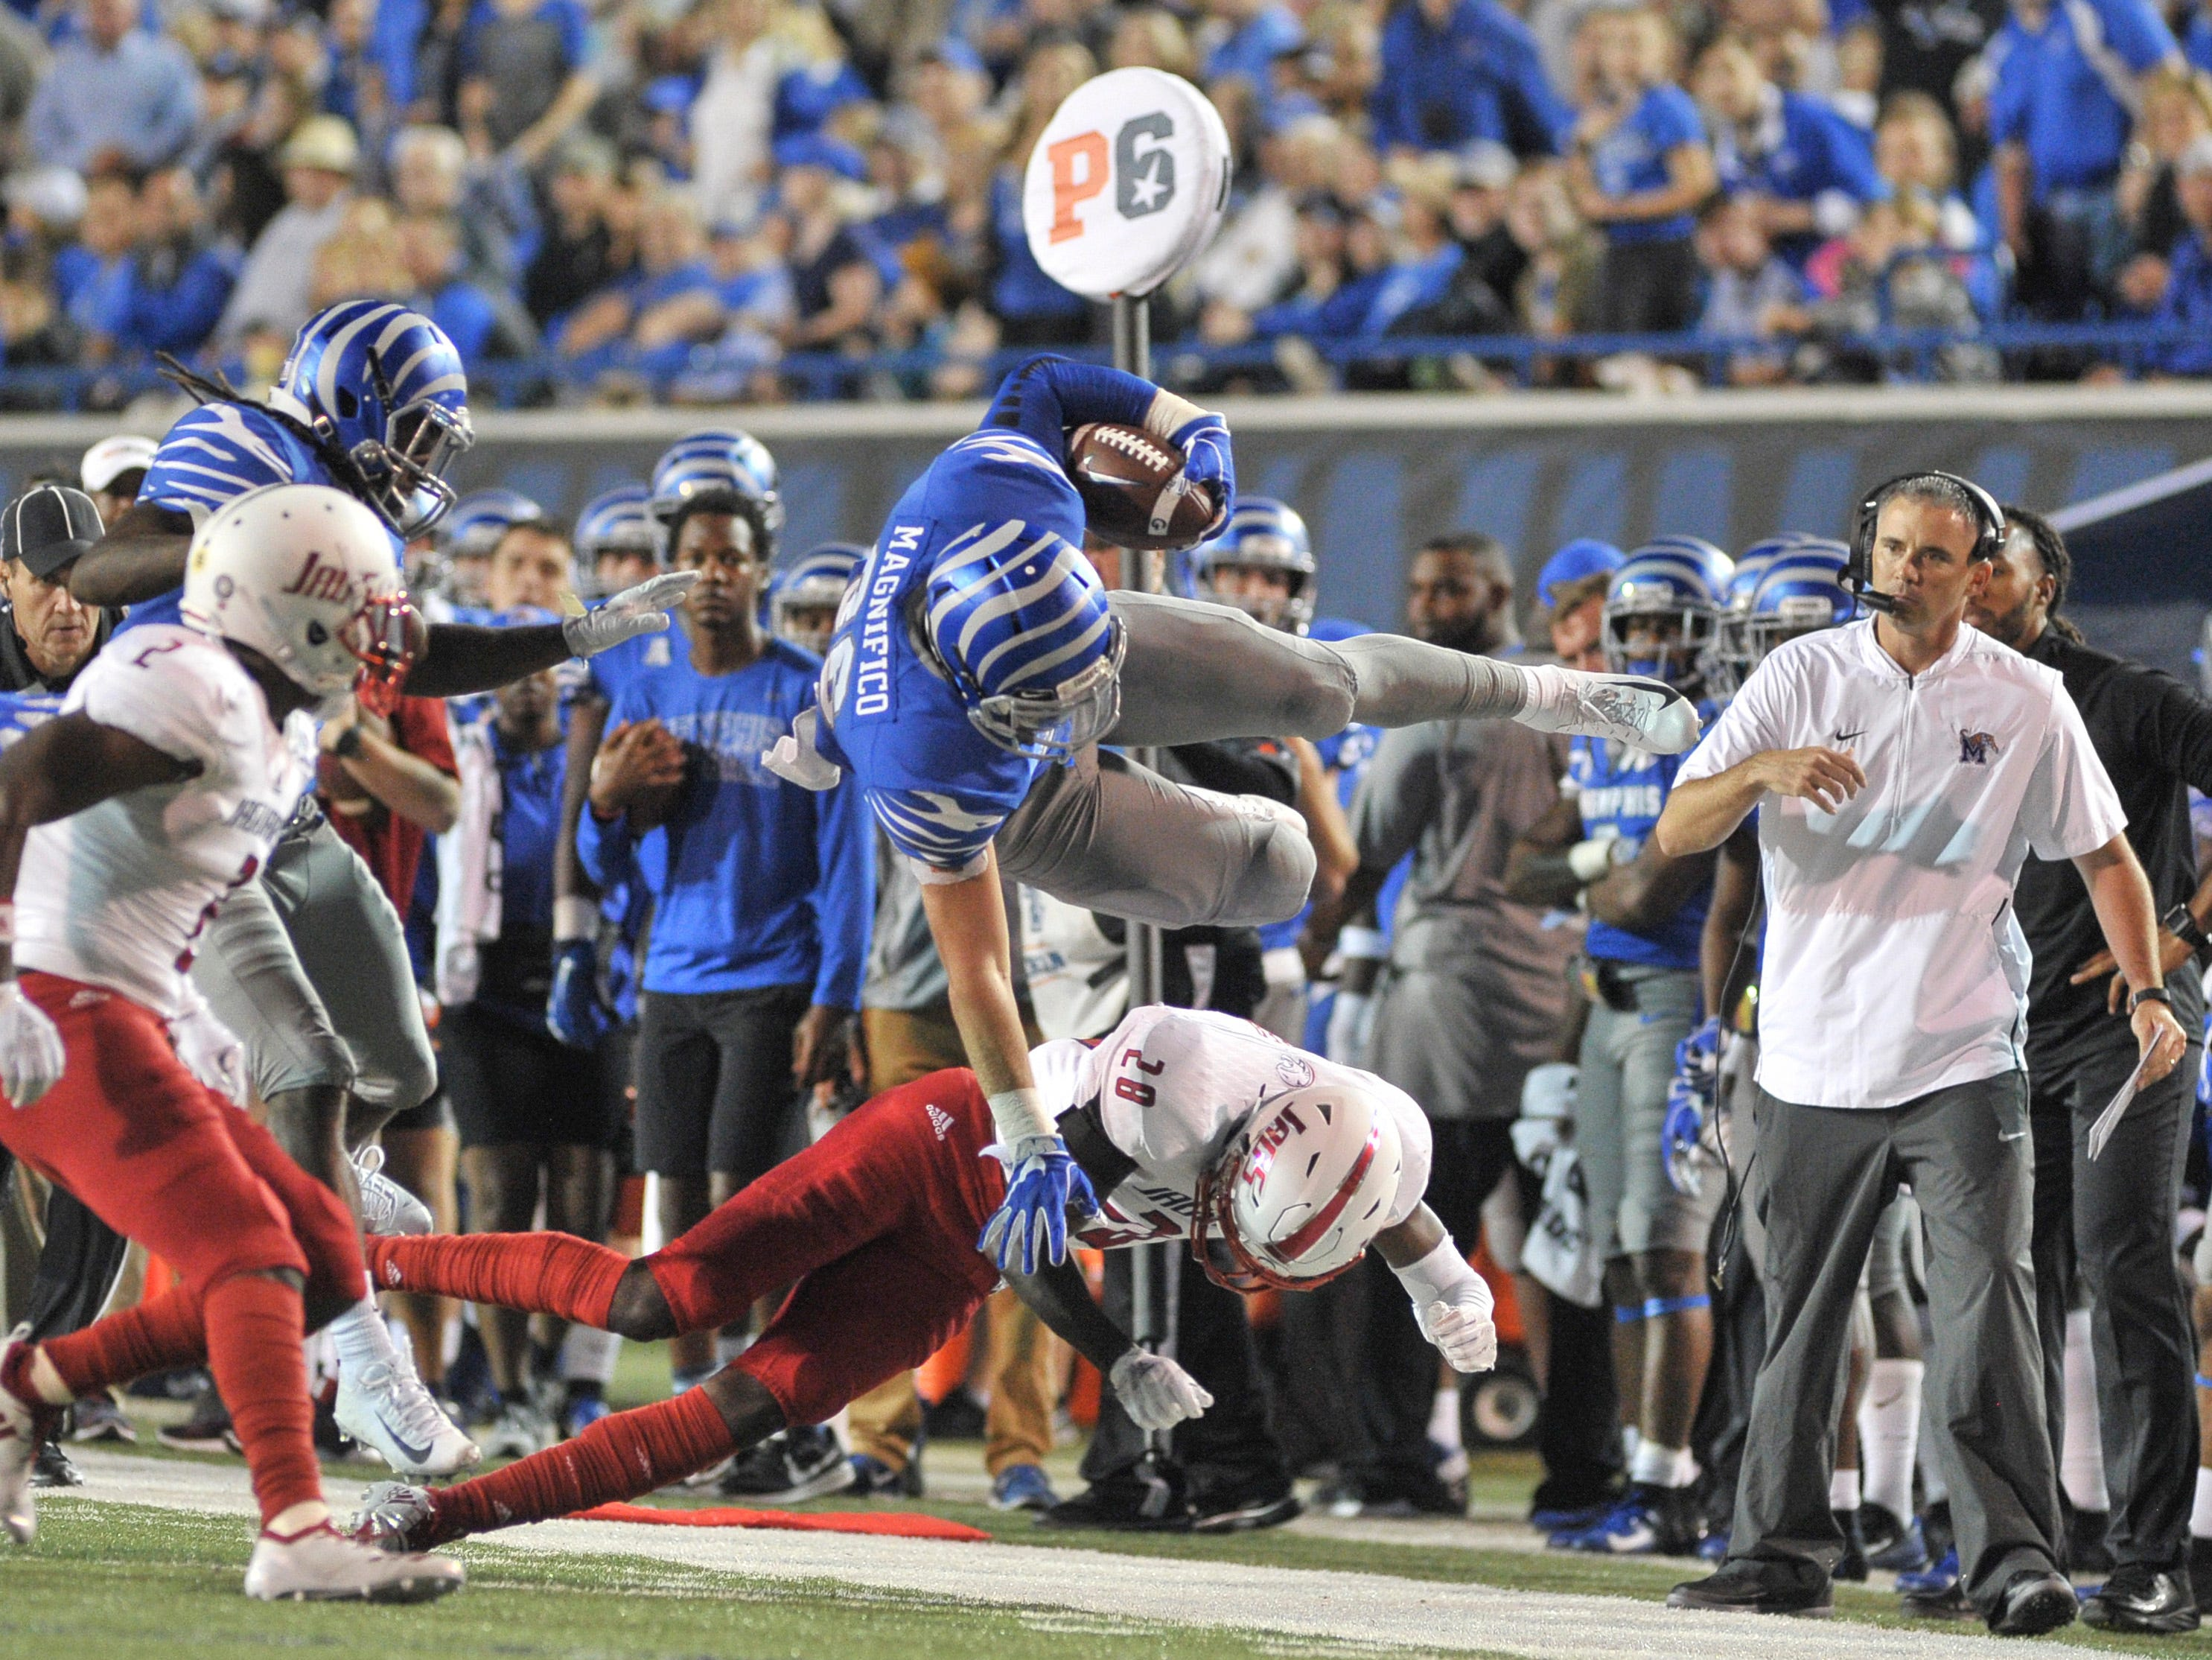 Memphis Tigers tight end Joey Magnifico (86) leaps over South Alabama Jaguars cornerback Travis Reed (28) during the first half at Liberty Bowl Memorial Stadium.